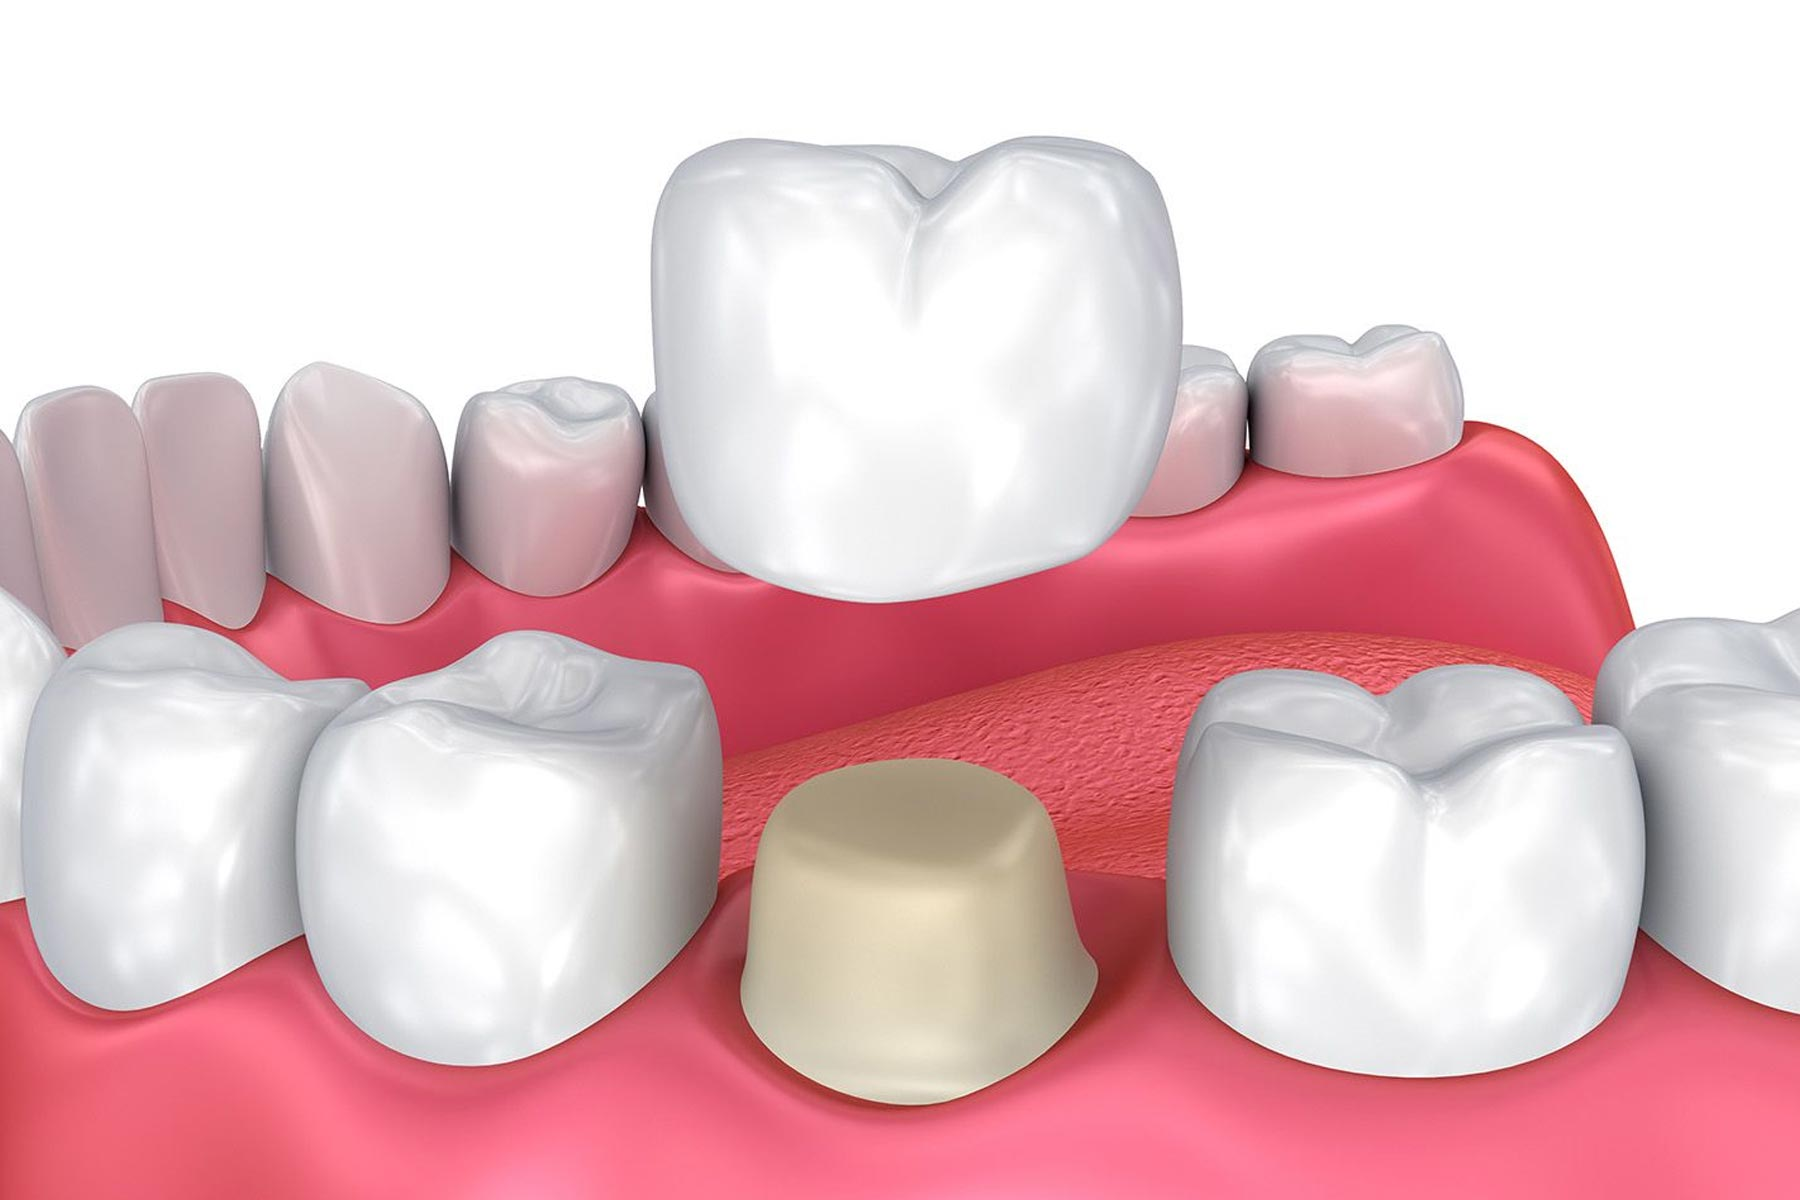 Dental crowns graphic showing up the crown fits into the mouth